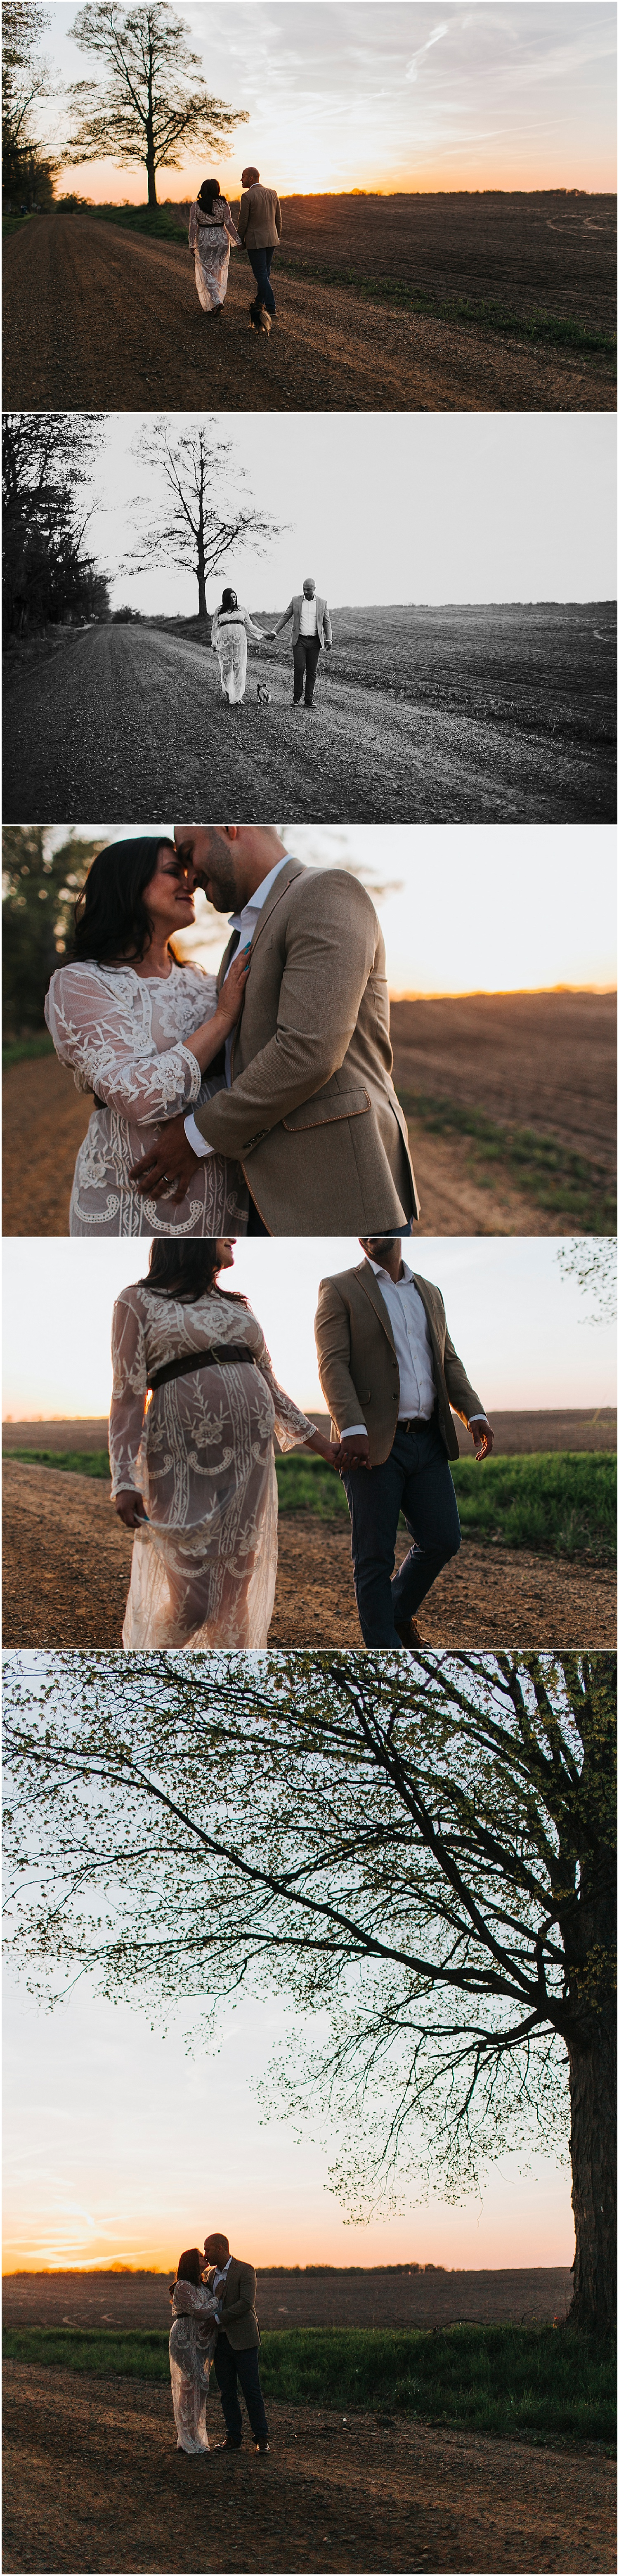 pregnant wife walking with husband on dirt road